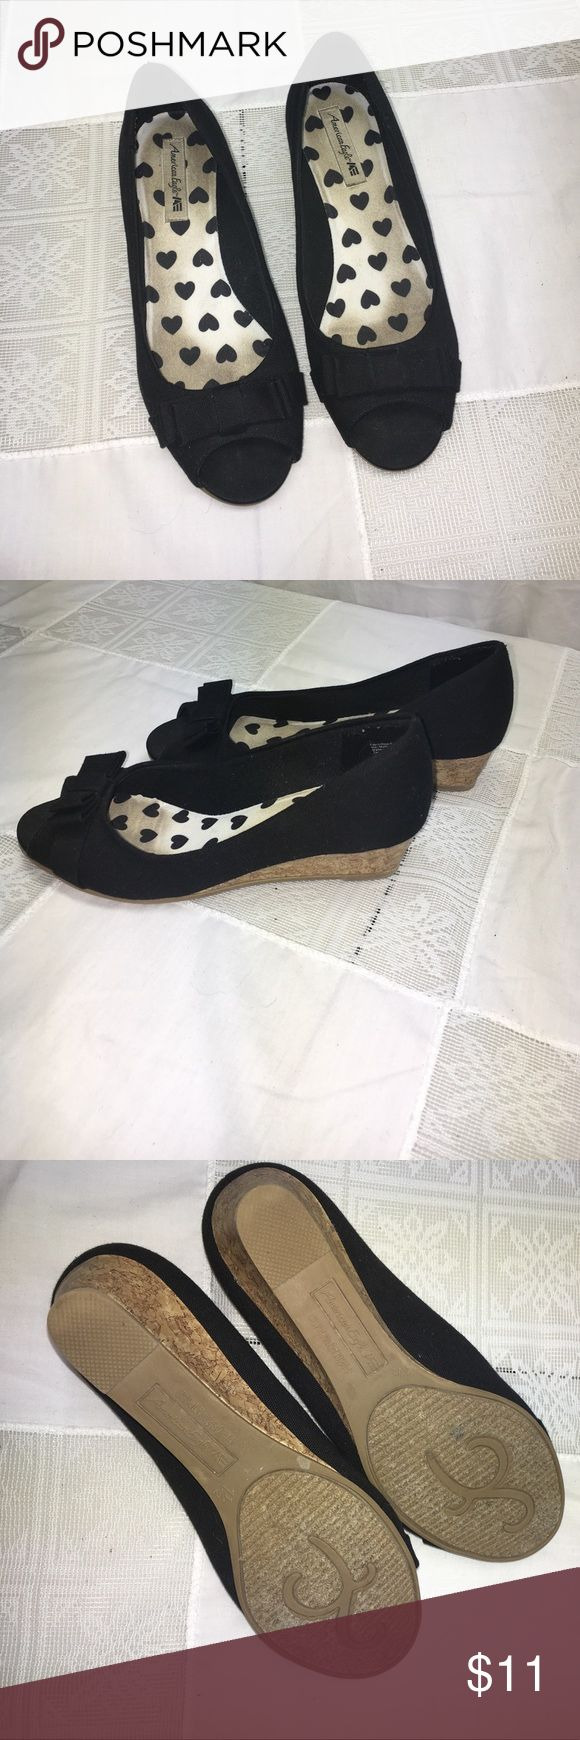 American Eagle Girls shoes . Size 1.5 ❤️❤️❤️ Adorable Shoes !!!  They have been worn but have LOTS of life in them.  Your little girl will love wearing these !!  She will feel like a big girl with small heel . GREAT CONDITION !!!  ❤️❤️❤️ American Eagle By Payless Shoes Dress Shoes